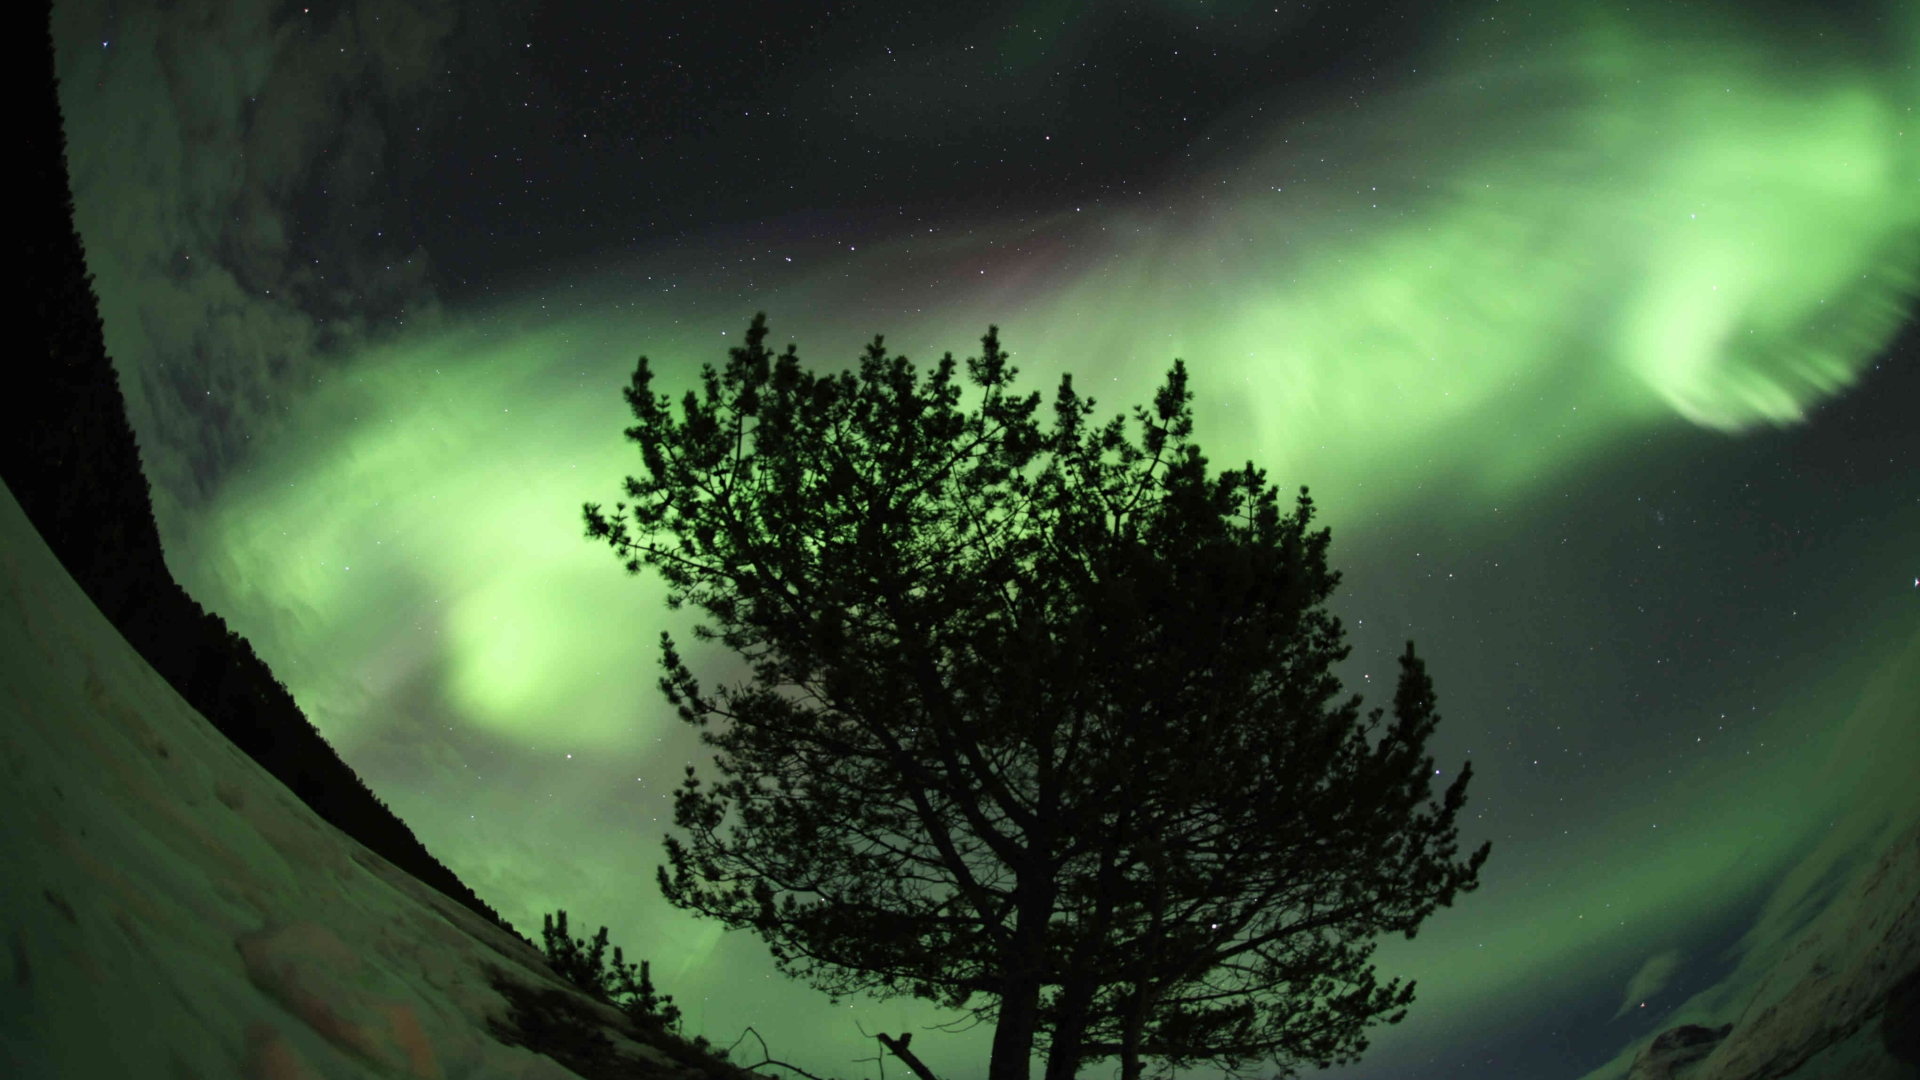 Tree under the Northern Lights